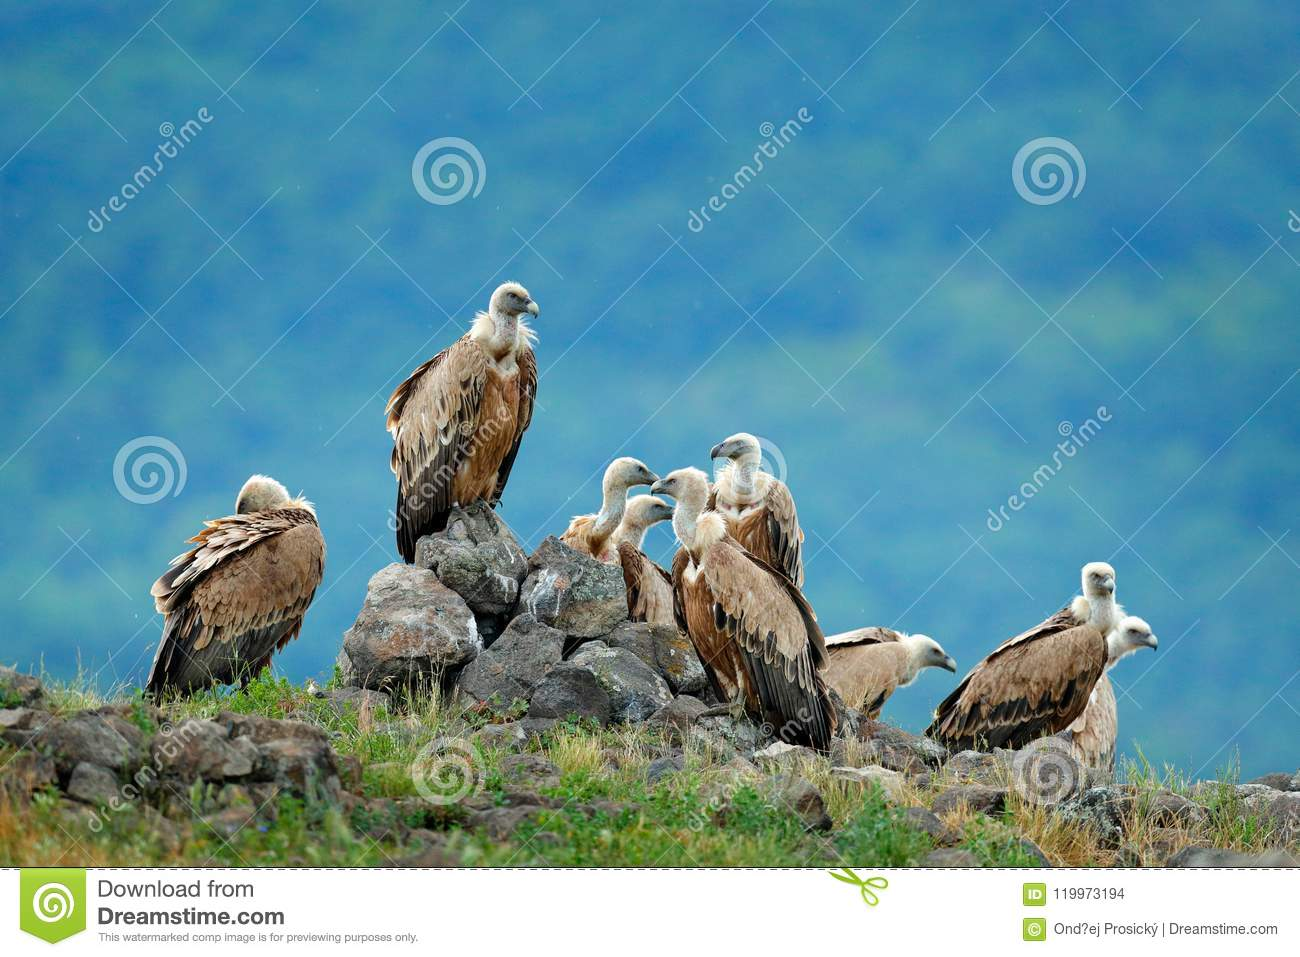 Group Of Vultures Griffon Vulture Gyps Fulvus Big Birds Of Prey Sitting On The Rocky Mountain Nature Habitat Spain Wildlife Stock Photo Image Of Portrait Nature 119973194